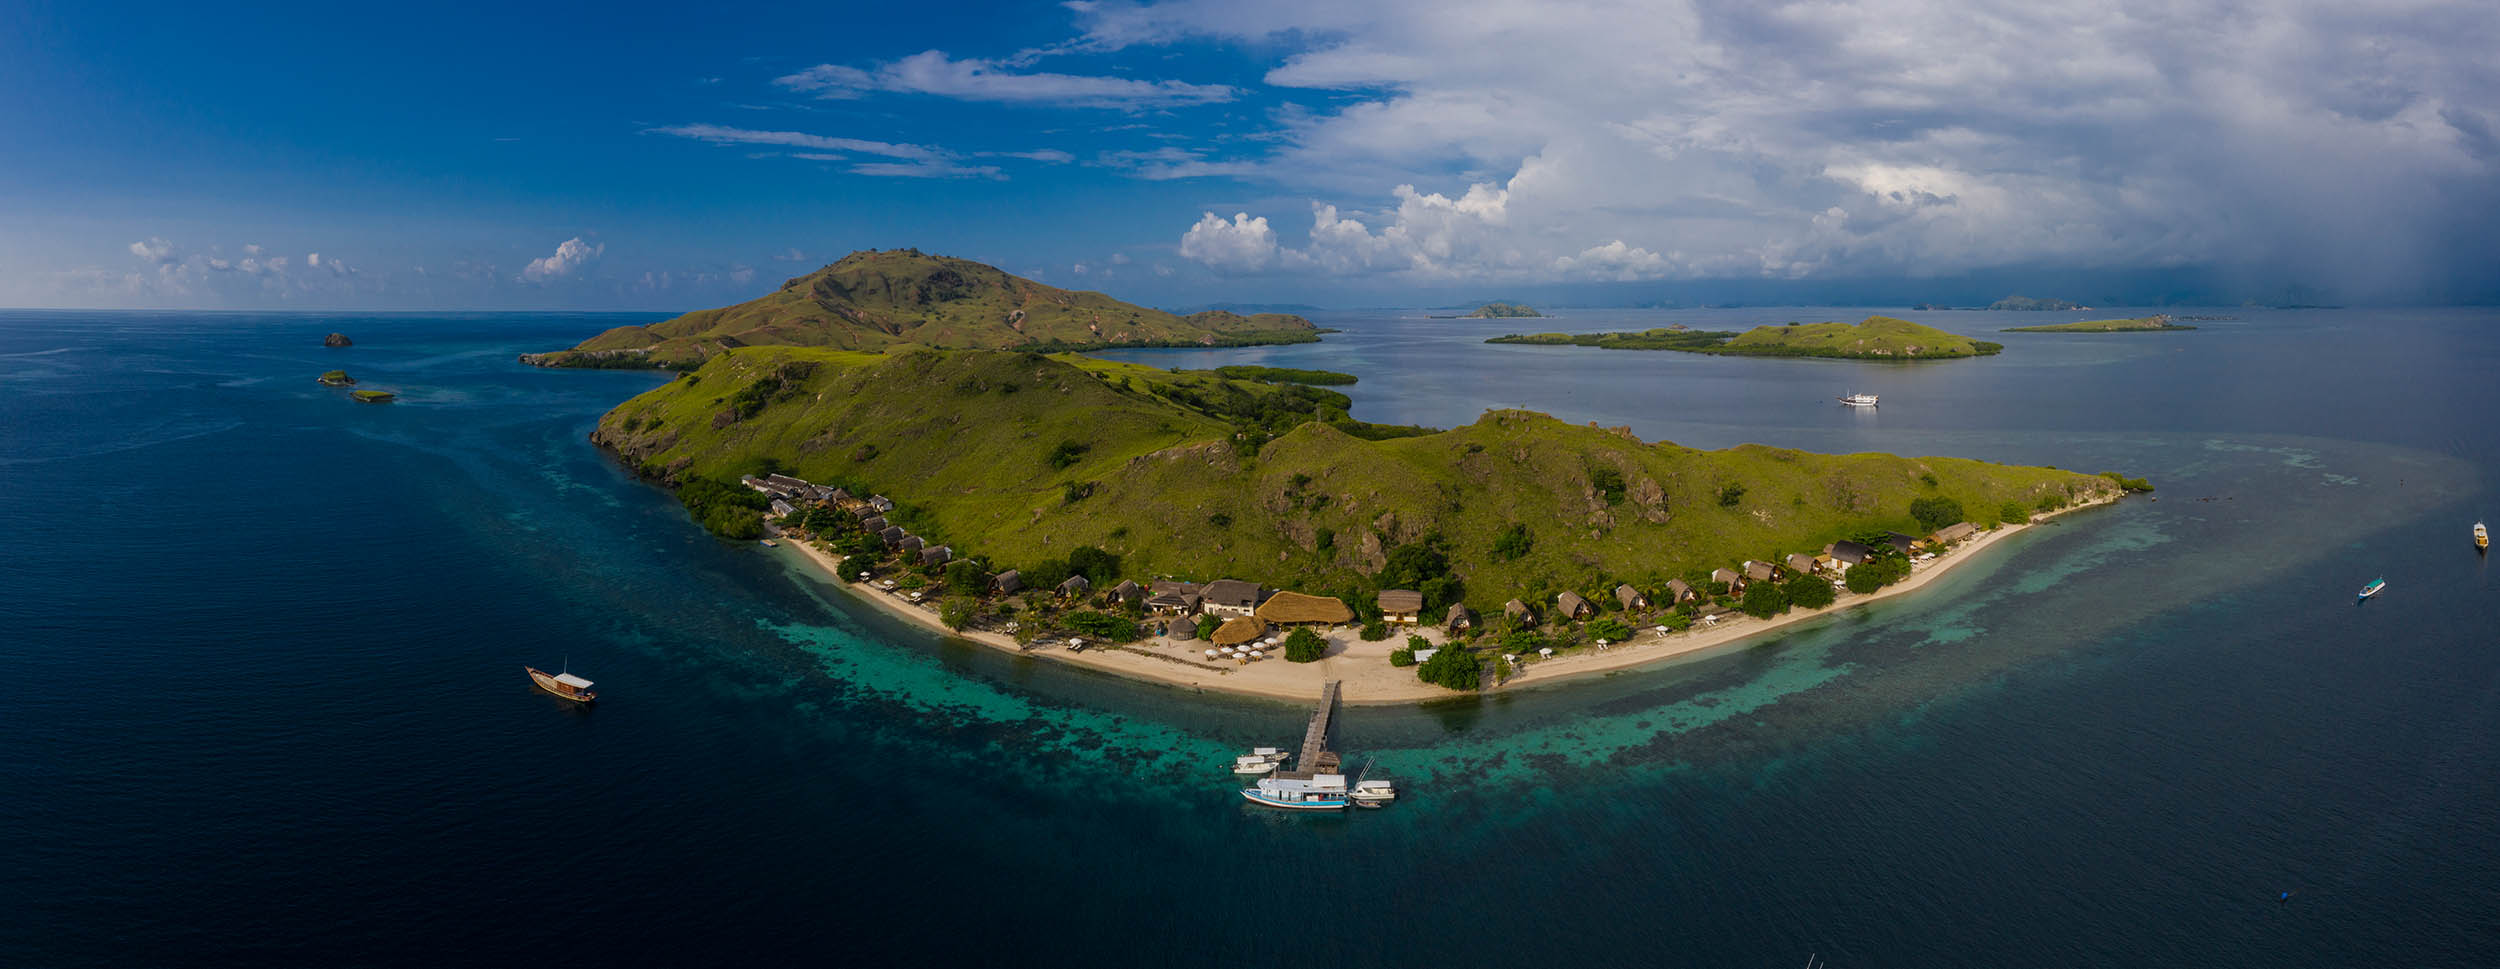 Komodo Resort Aerial Perspective